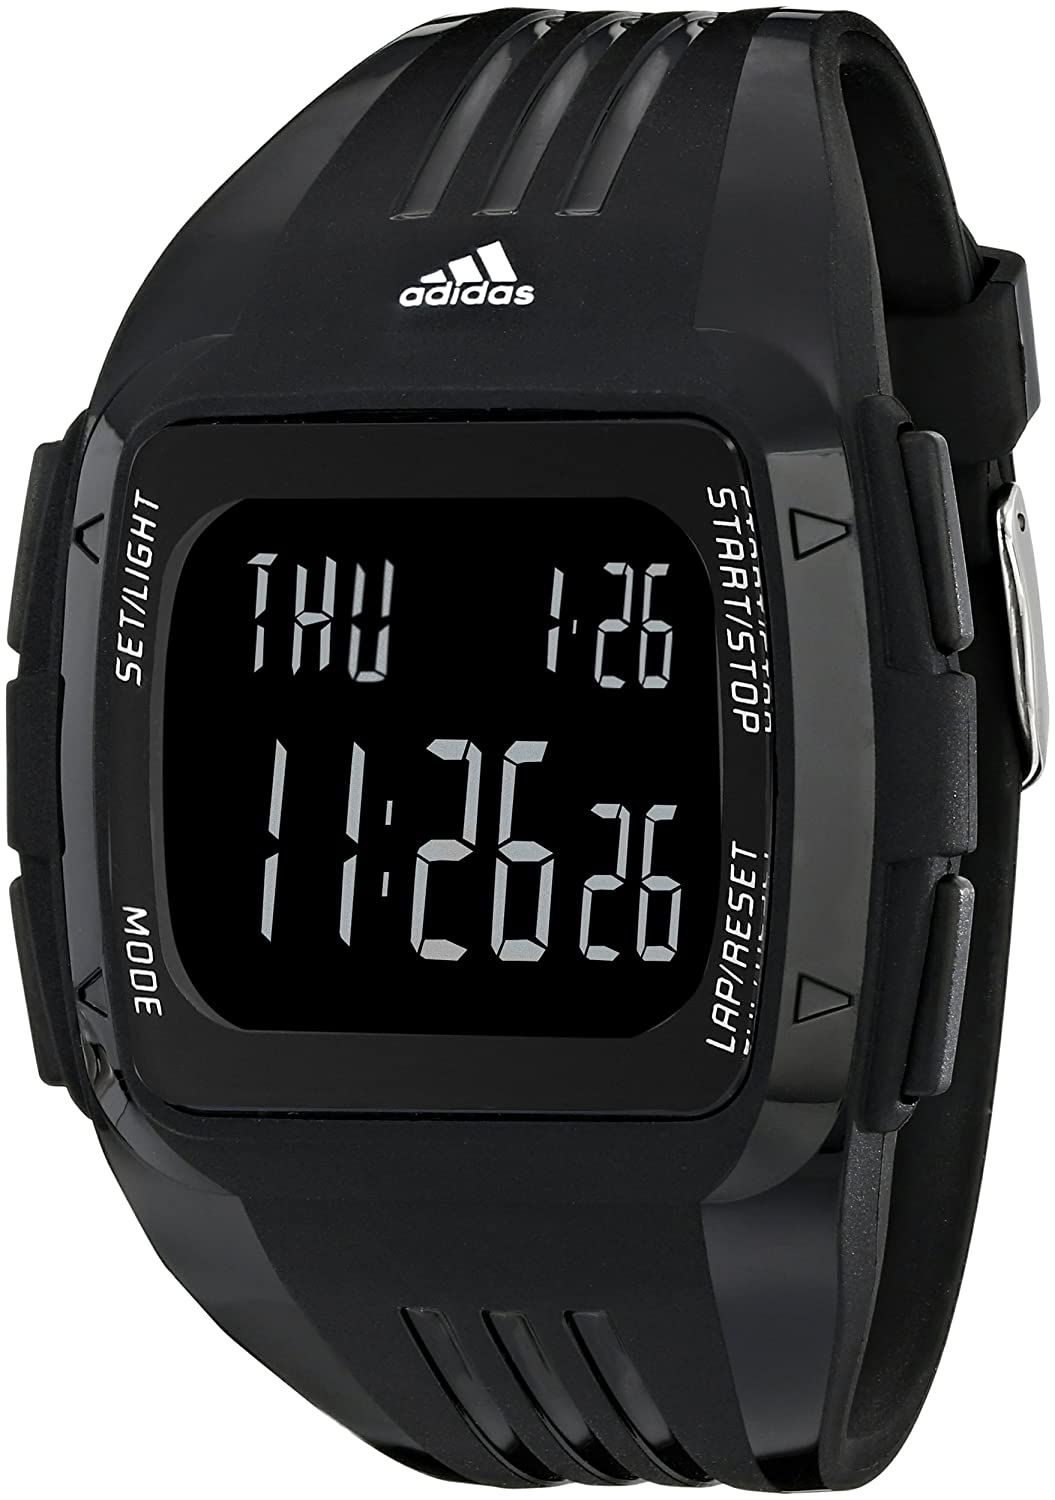 Buy adidas duramo watch   OFF70% Discounted ed42028343